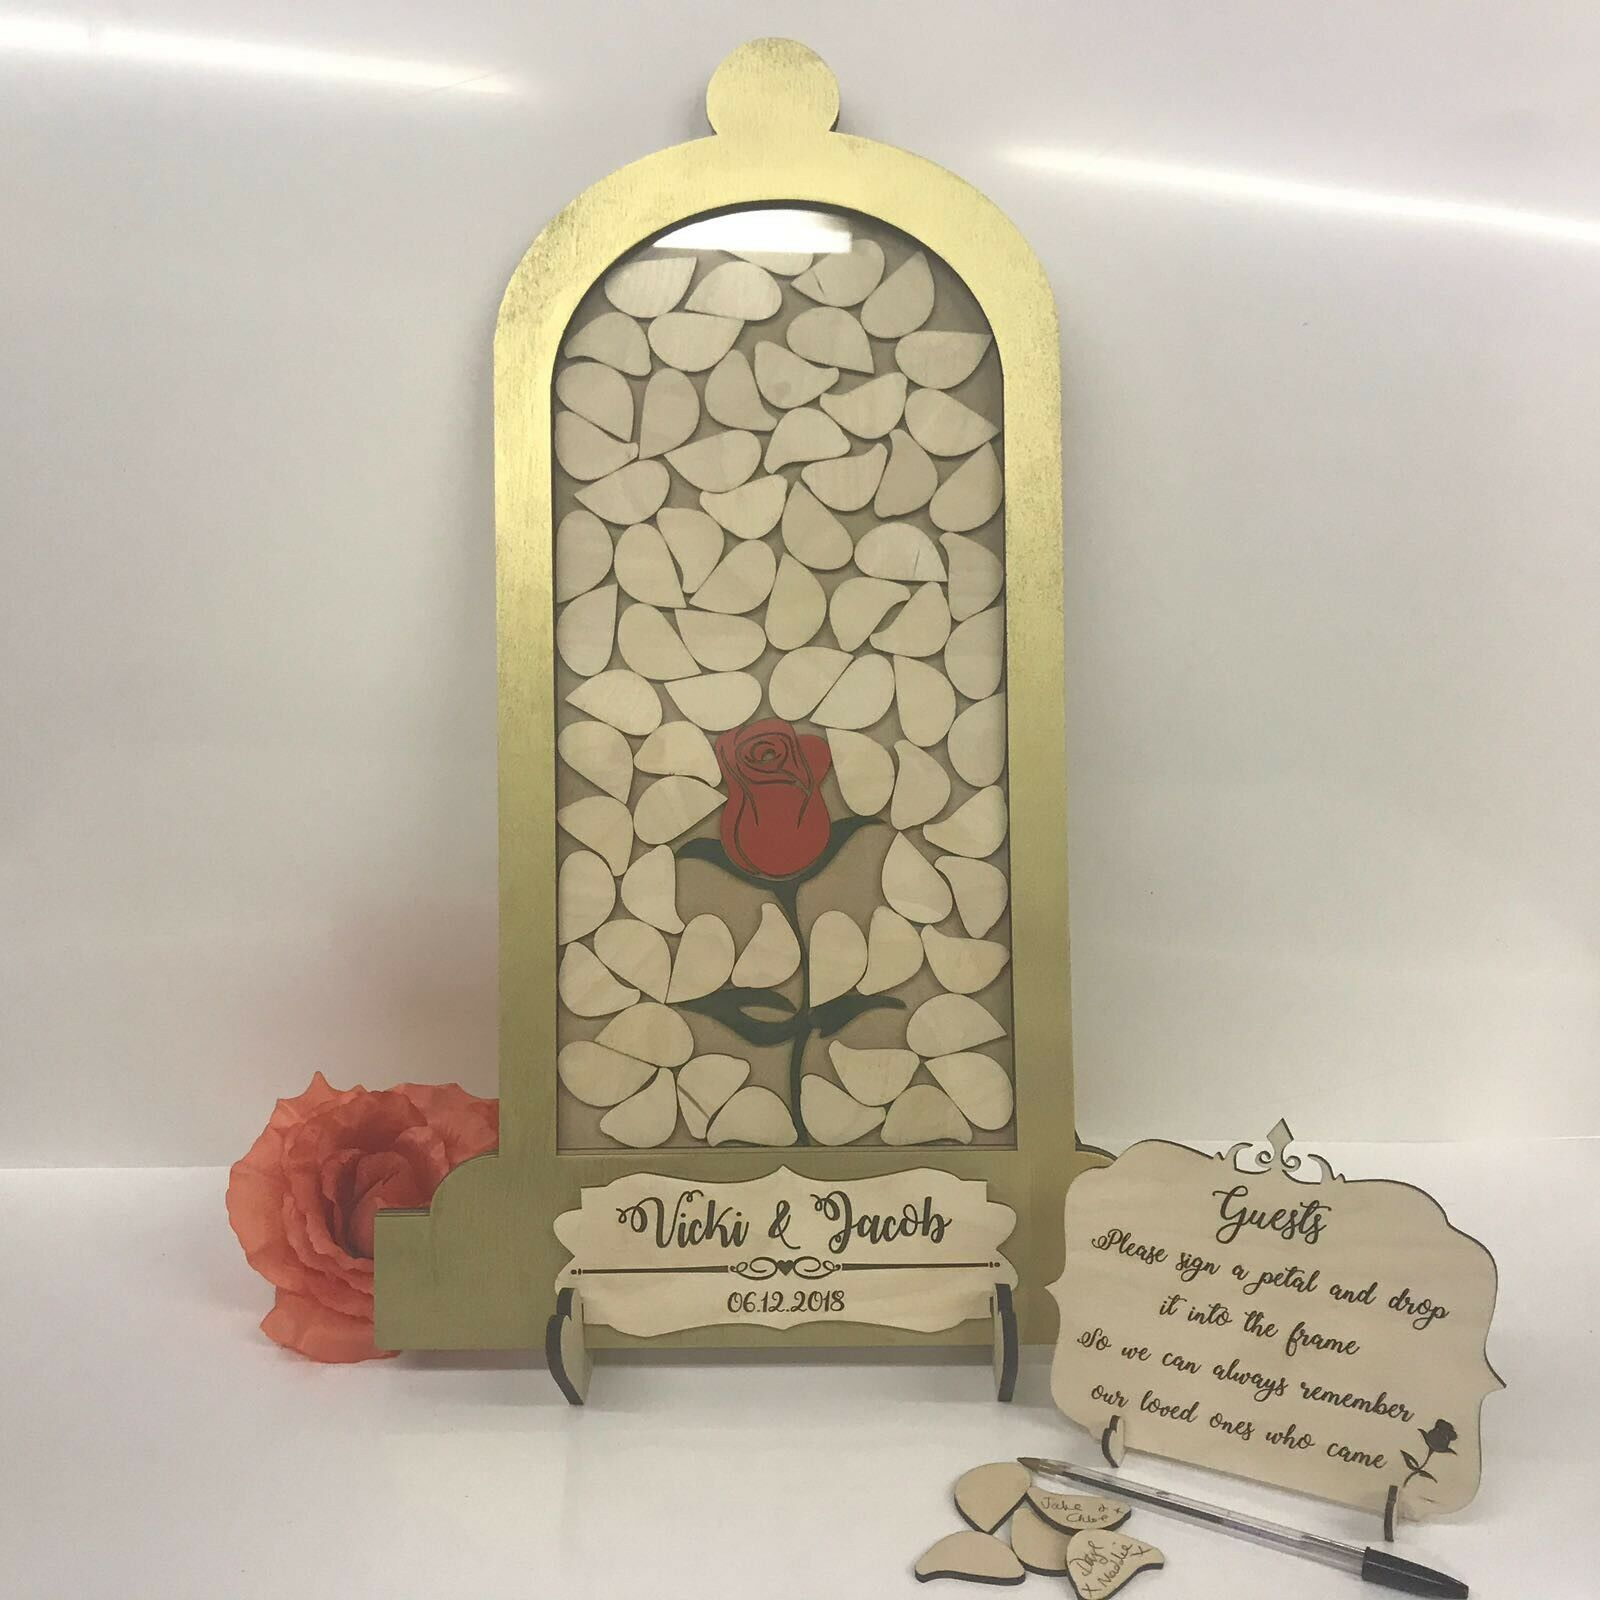 Beauty and the Beast Gold Wedding 95 drop box alternative guest book Dome Jar